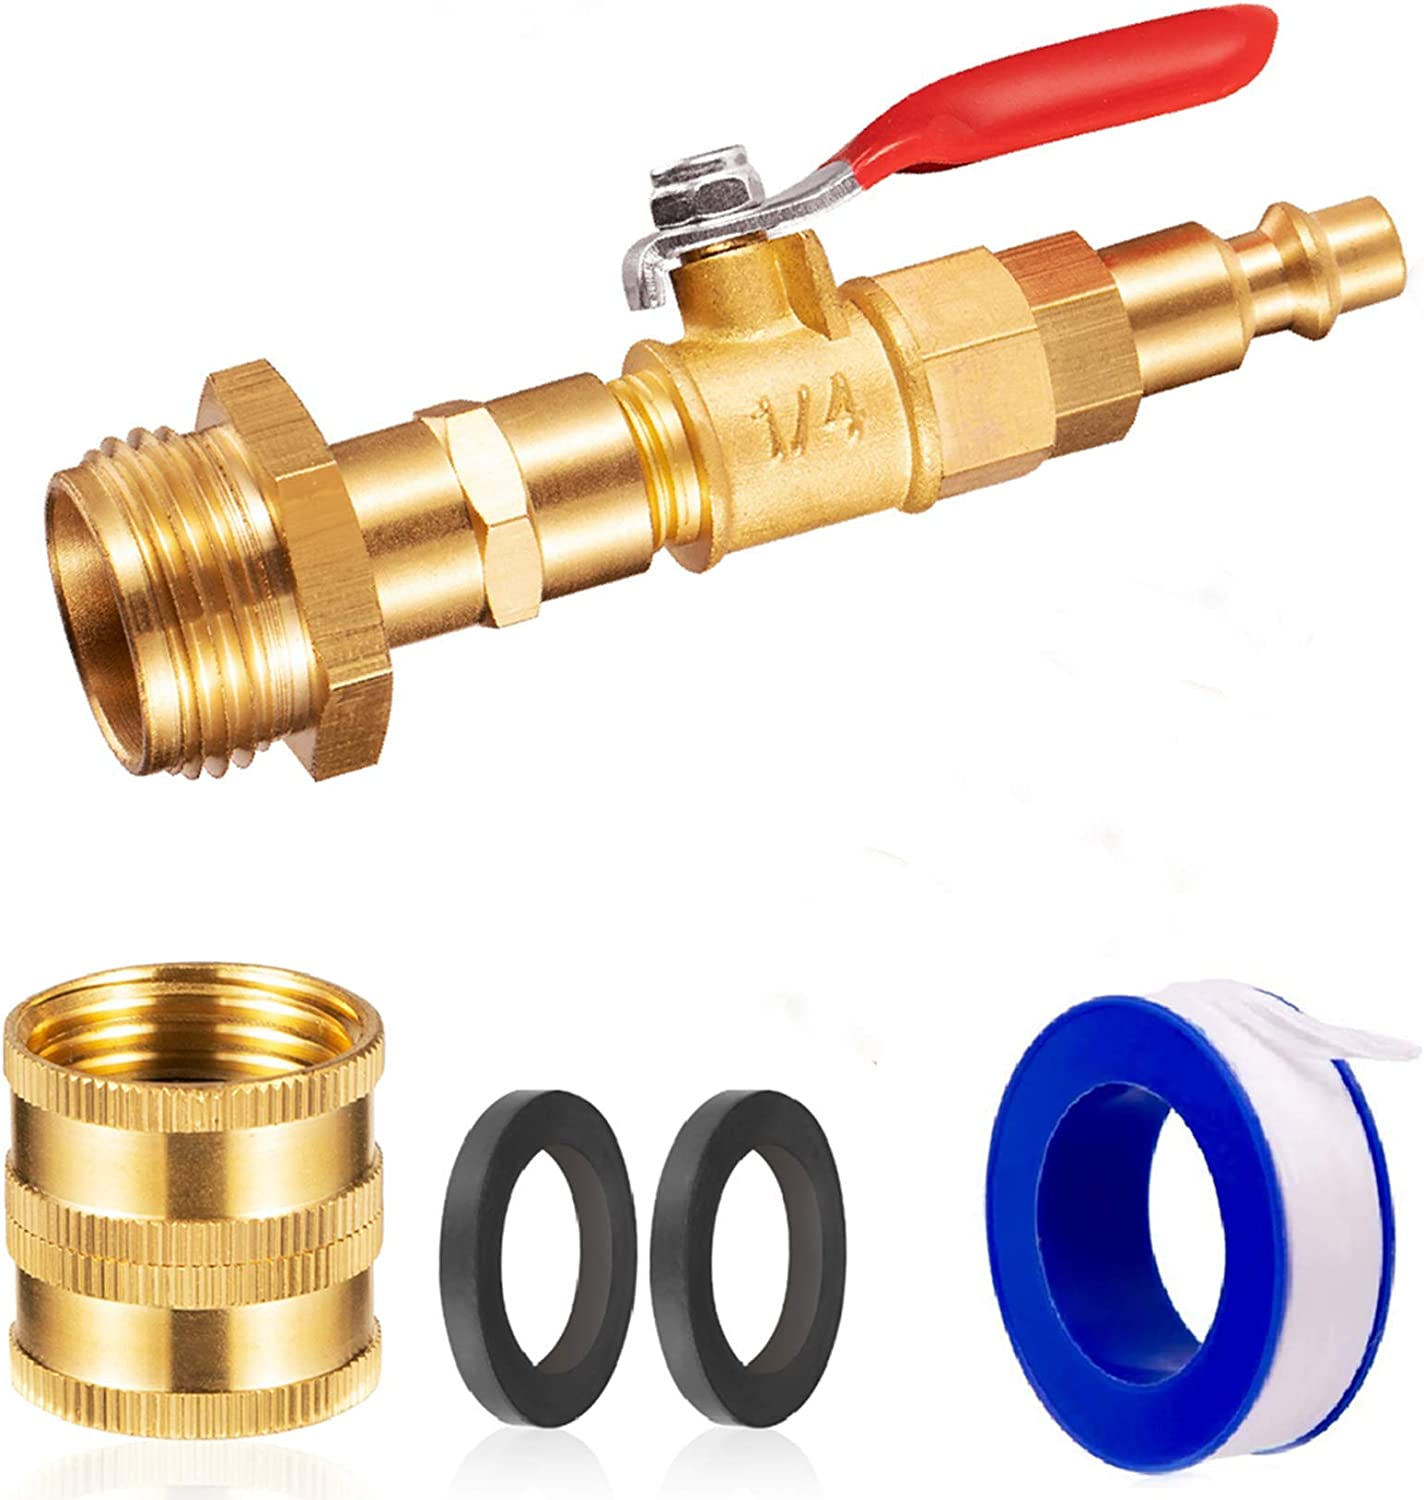 """RV Winterize Blowout Adapter, RV Winterizing Air Nozzle Plug, for Garden Hose Camper Boat Trailer,1/4"""" Male Connect Plug 3/4"""" Male GHT Thread,with Ball Valve for Sprinkler Systems Ground Srinklers"""